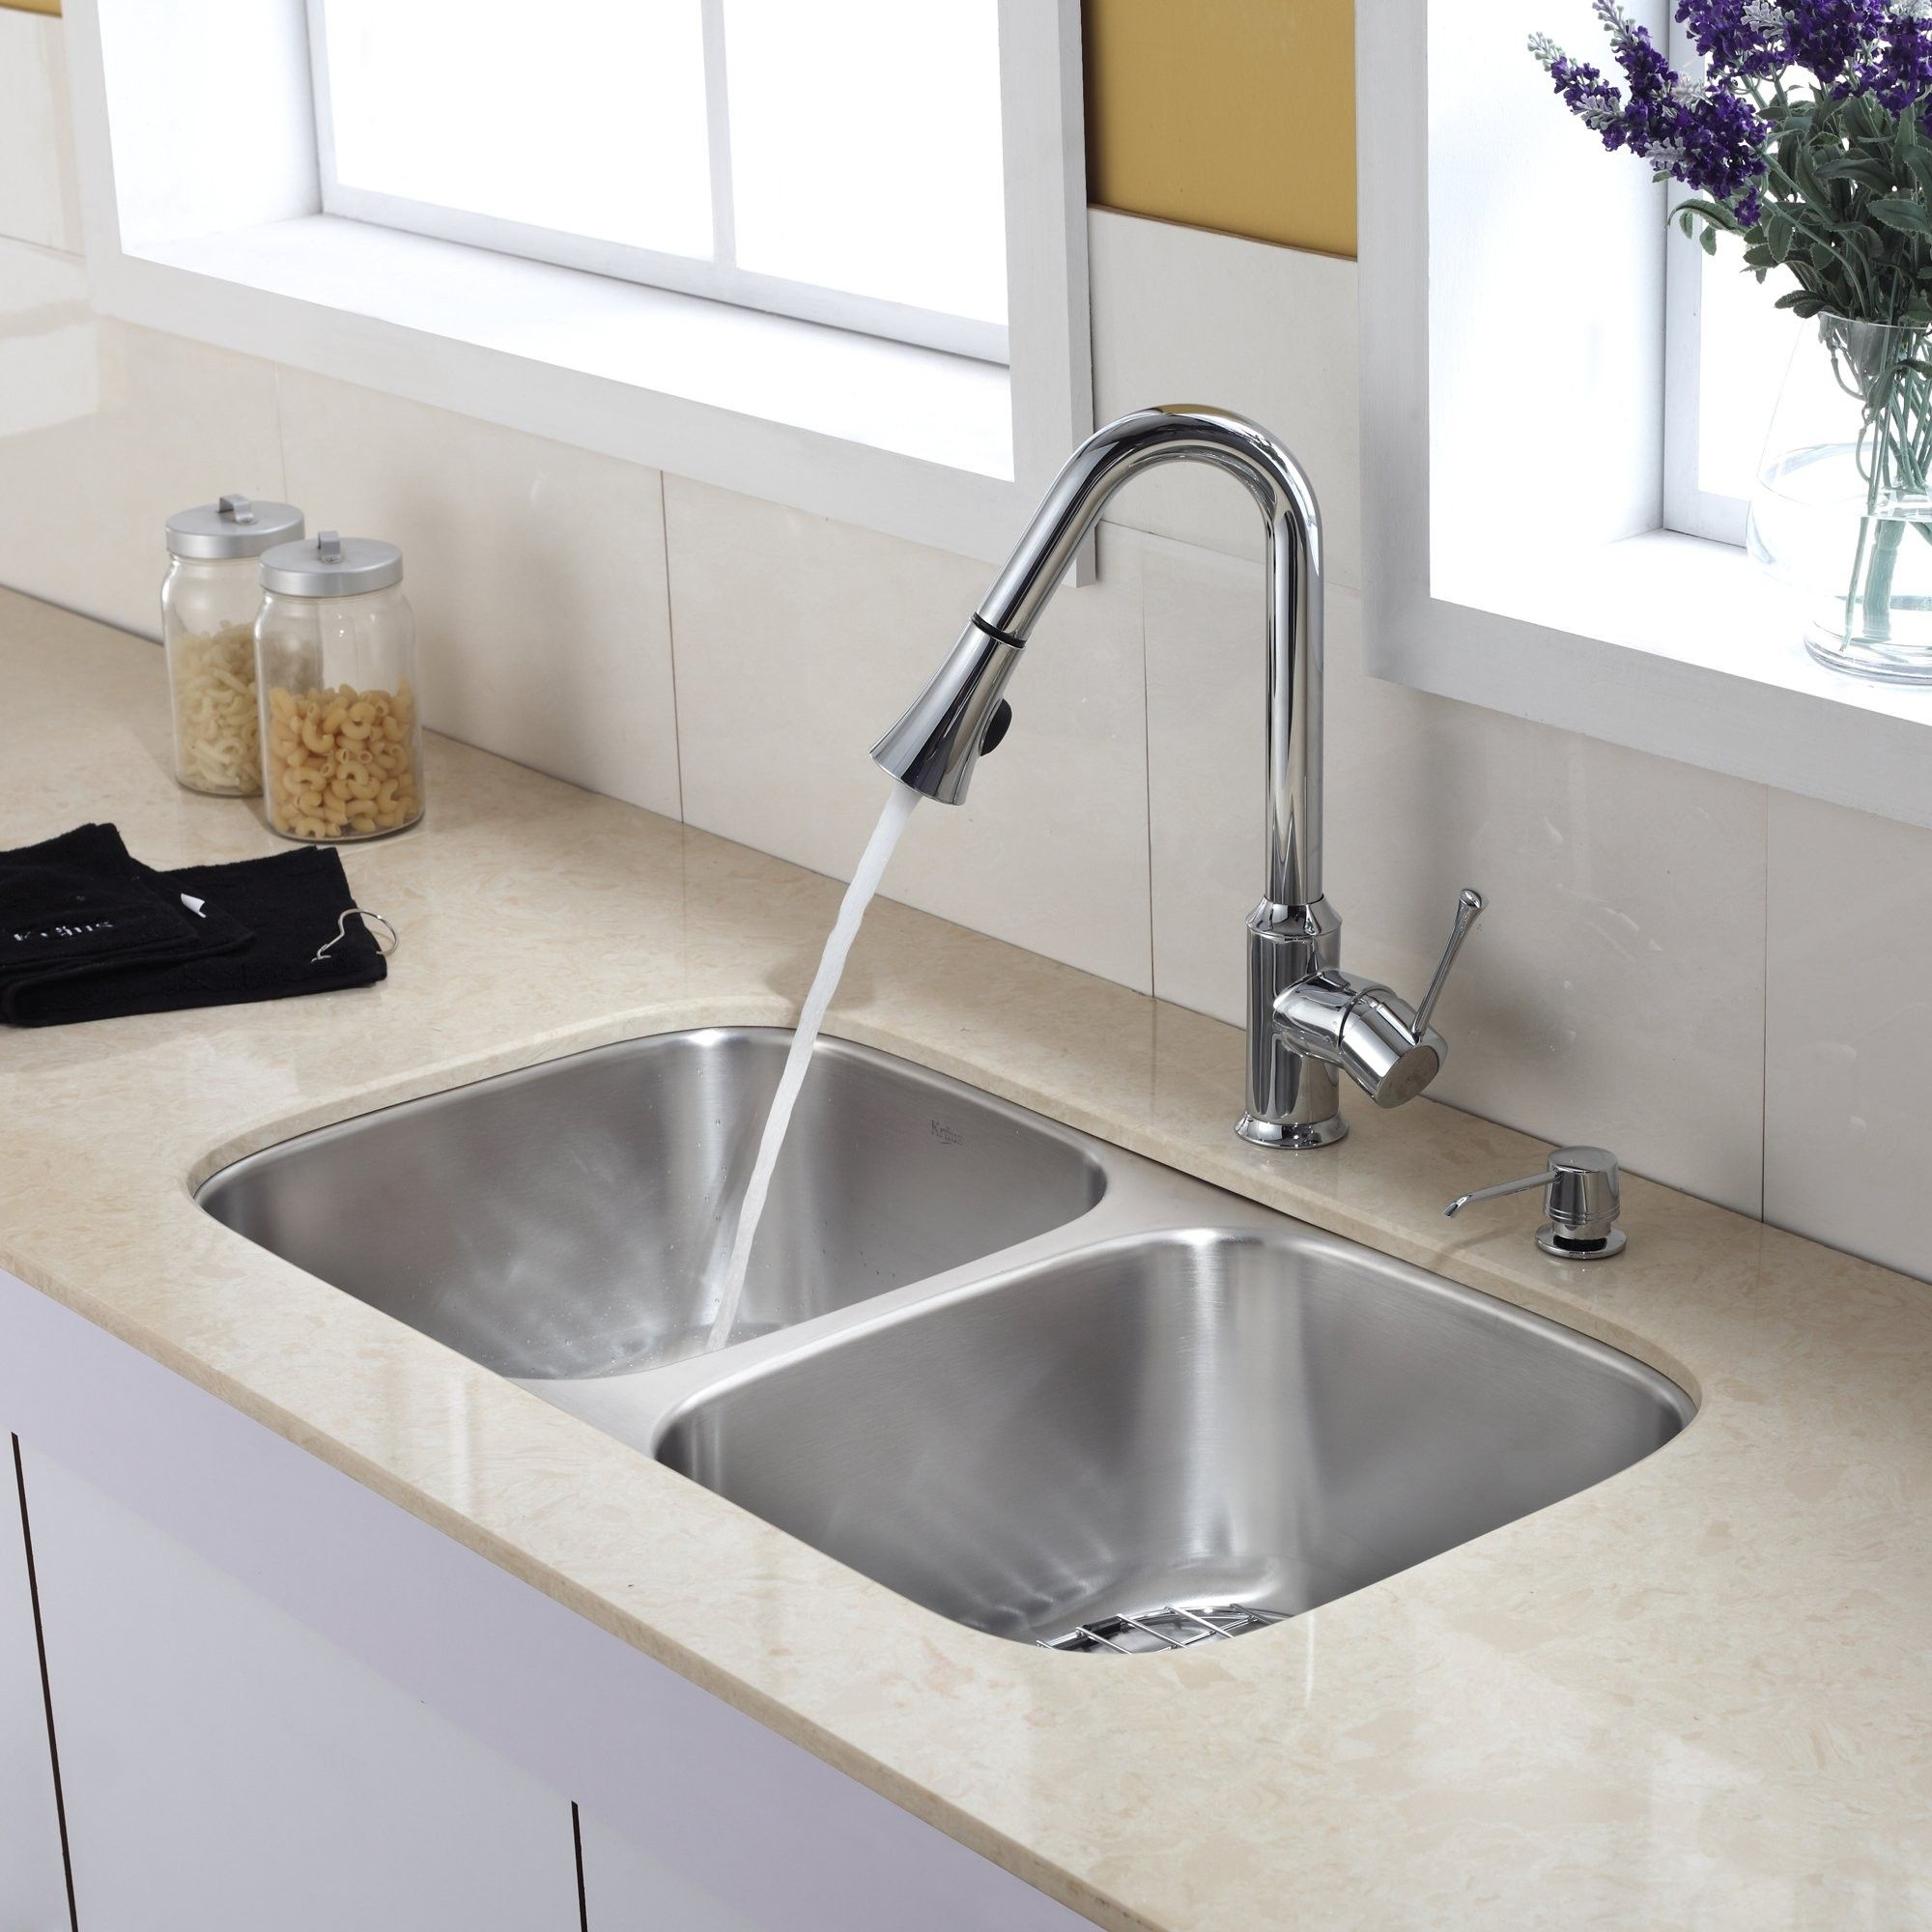 awesome Elegant 4 Piece Kitchen Faucet , discontinued 32 inch ...